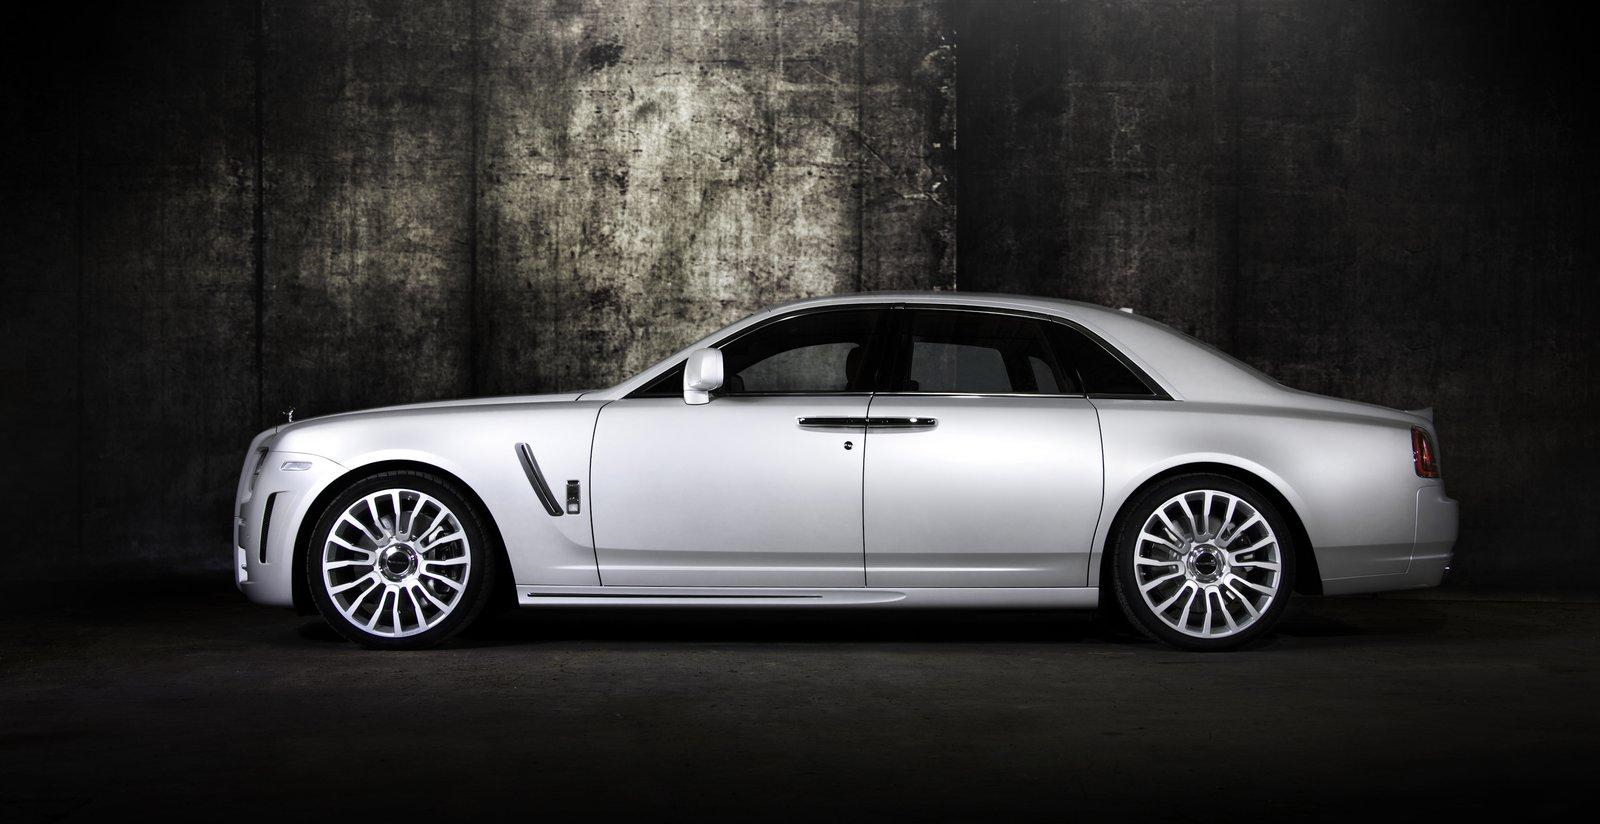 22 Inch Tires >> Mansory Rolls-Royce White Ghost Limited